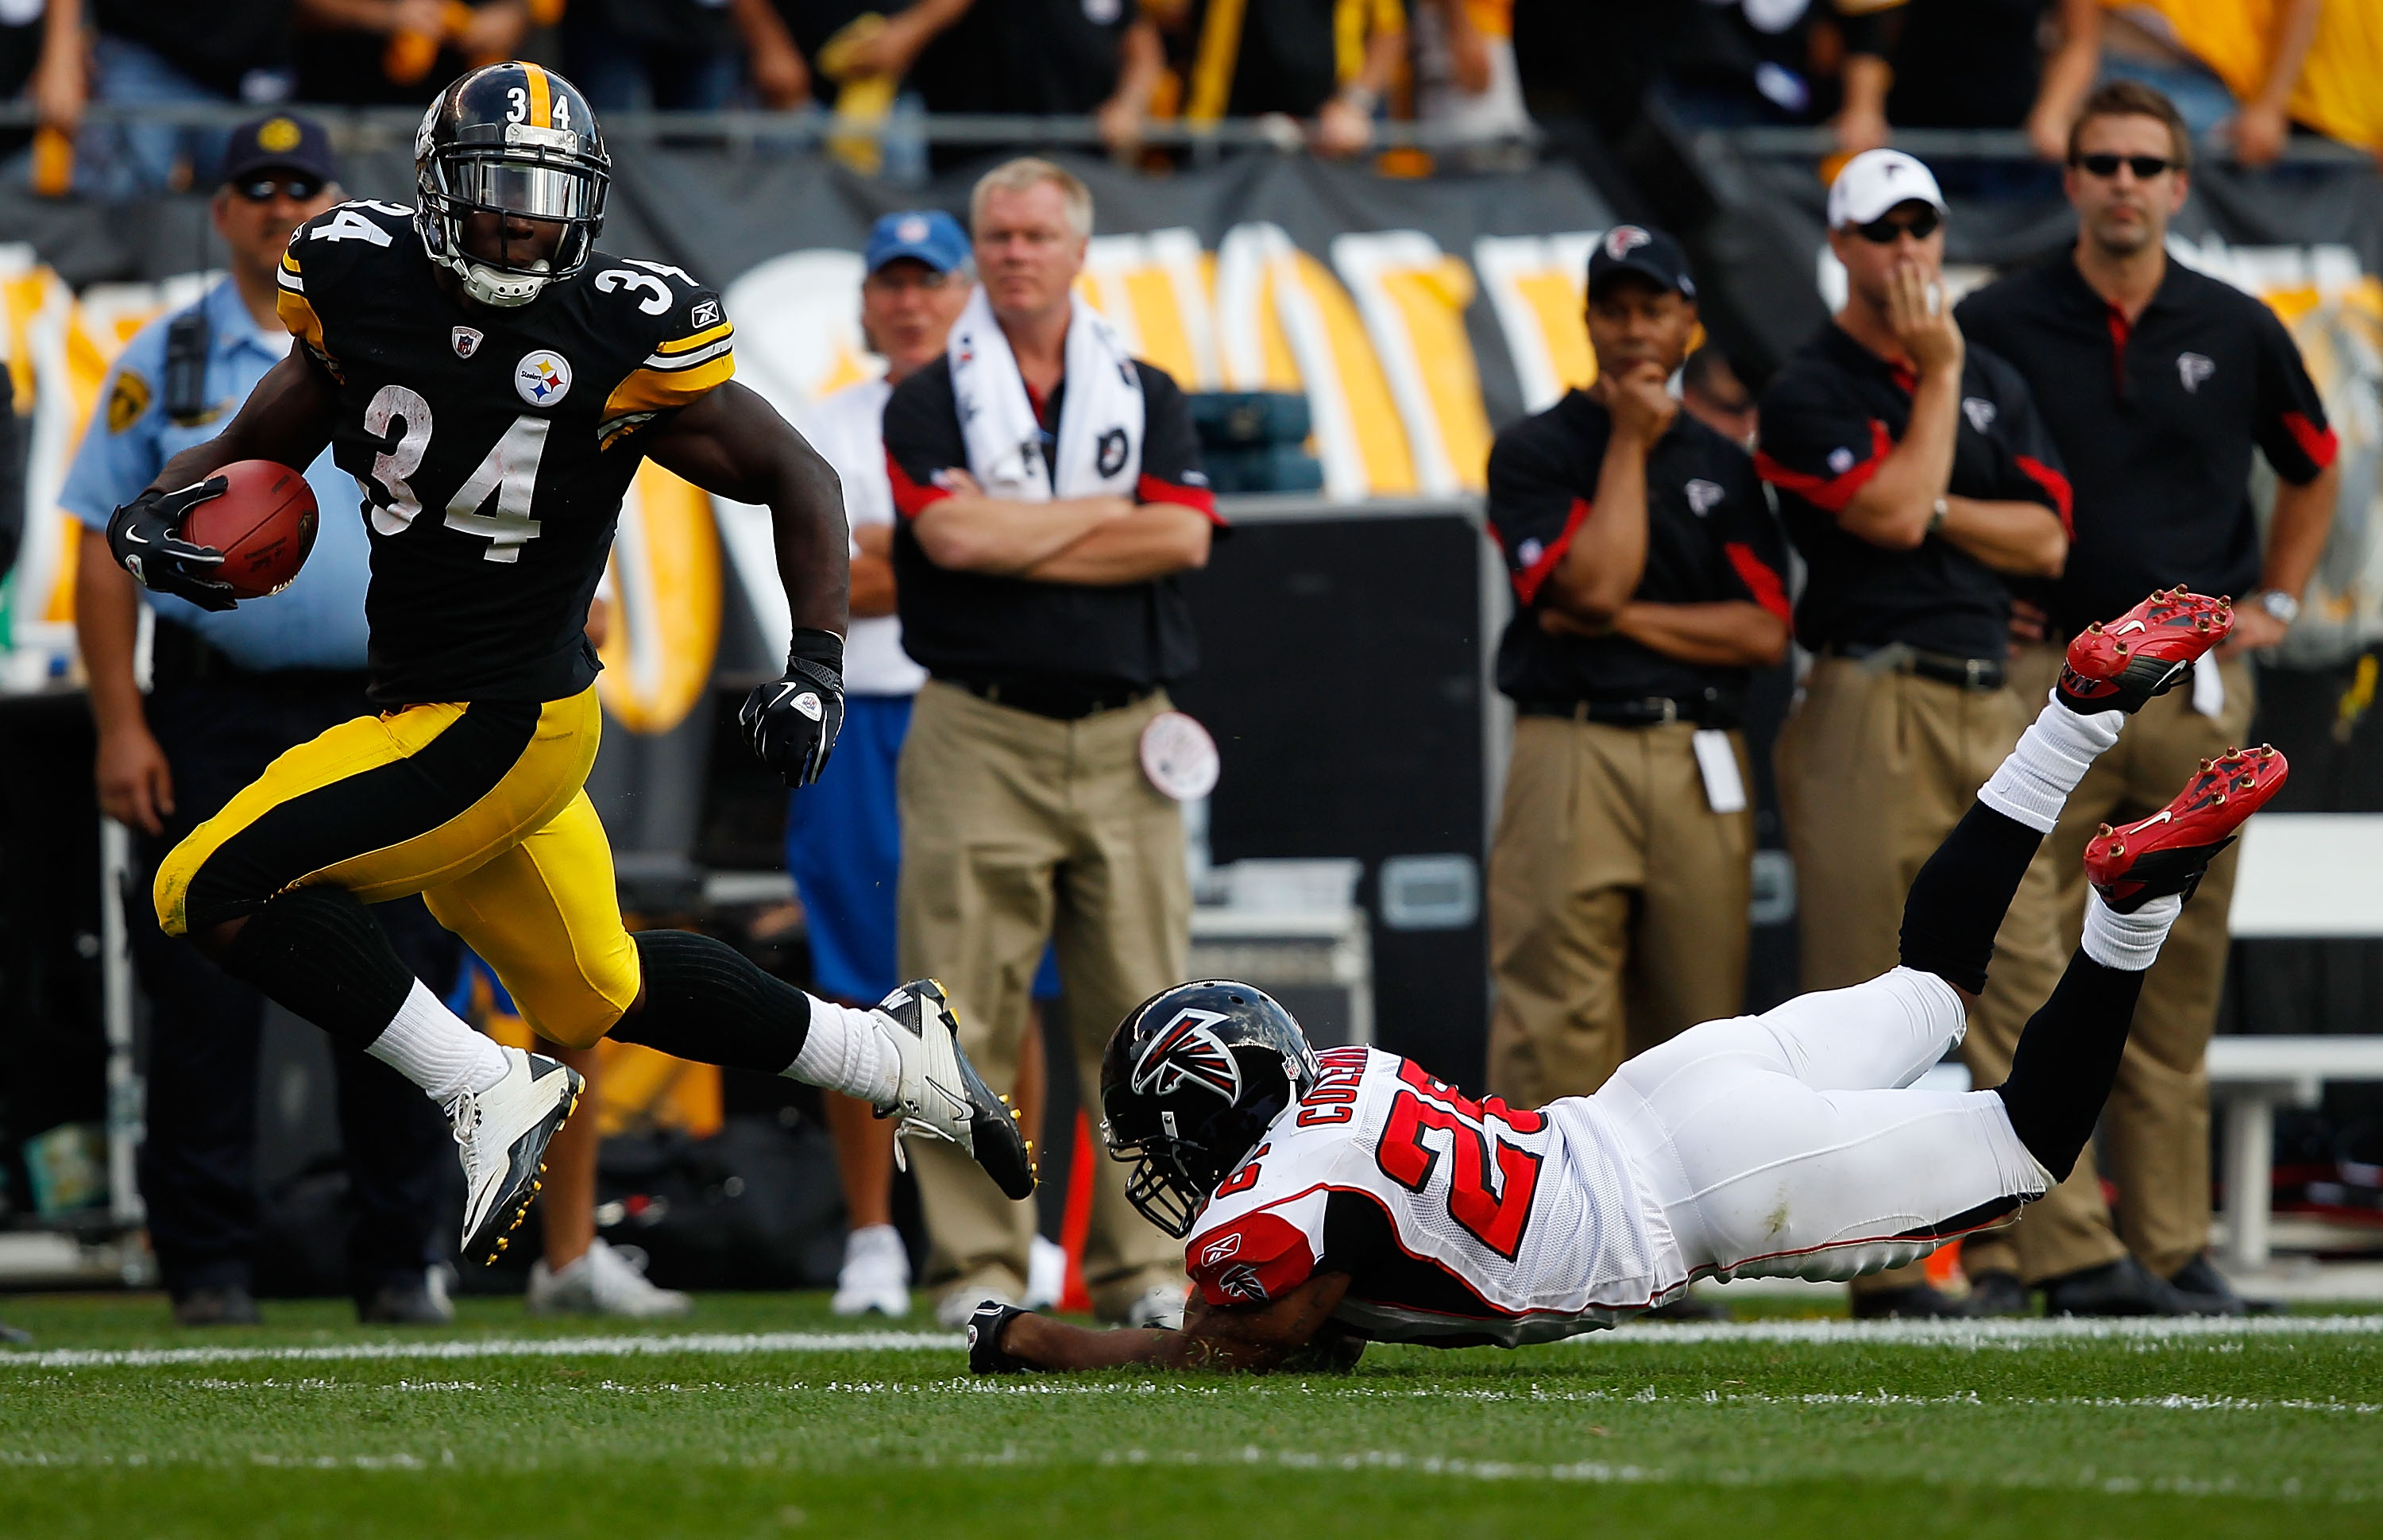 PITTSBURGH - SEPTEMBER 12:  Rashard Mendenhall #26 of the Pittsburgh Steelers runs past Erik Coleman #26 of the Atlanta Falcons for a 50-yard game winning touchdown in overtime during the NFL season opener game on September 12, 2010 at Heinz Field in Pitt